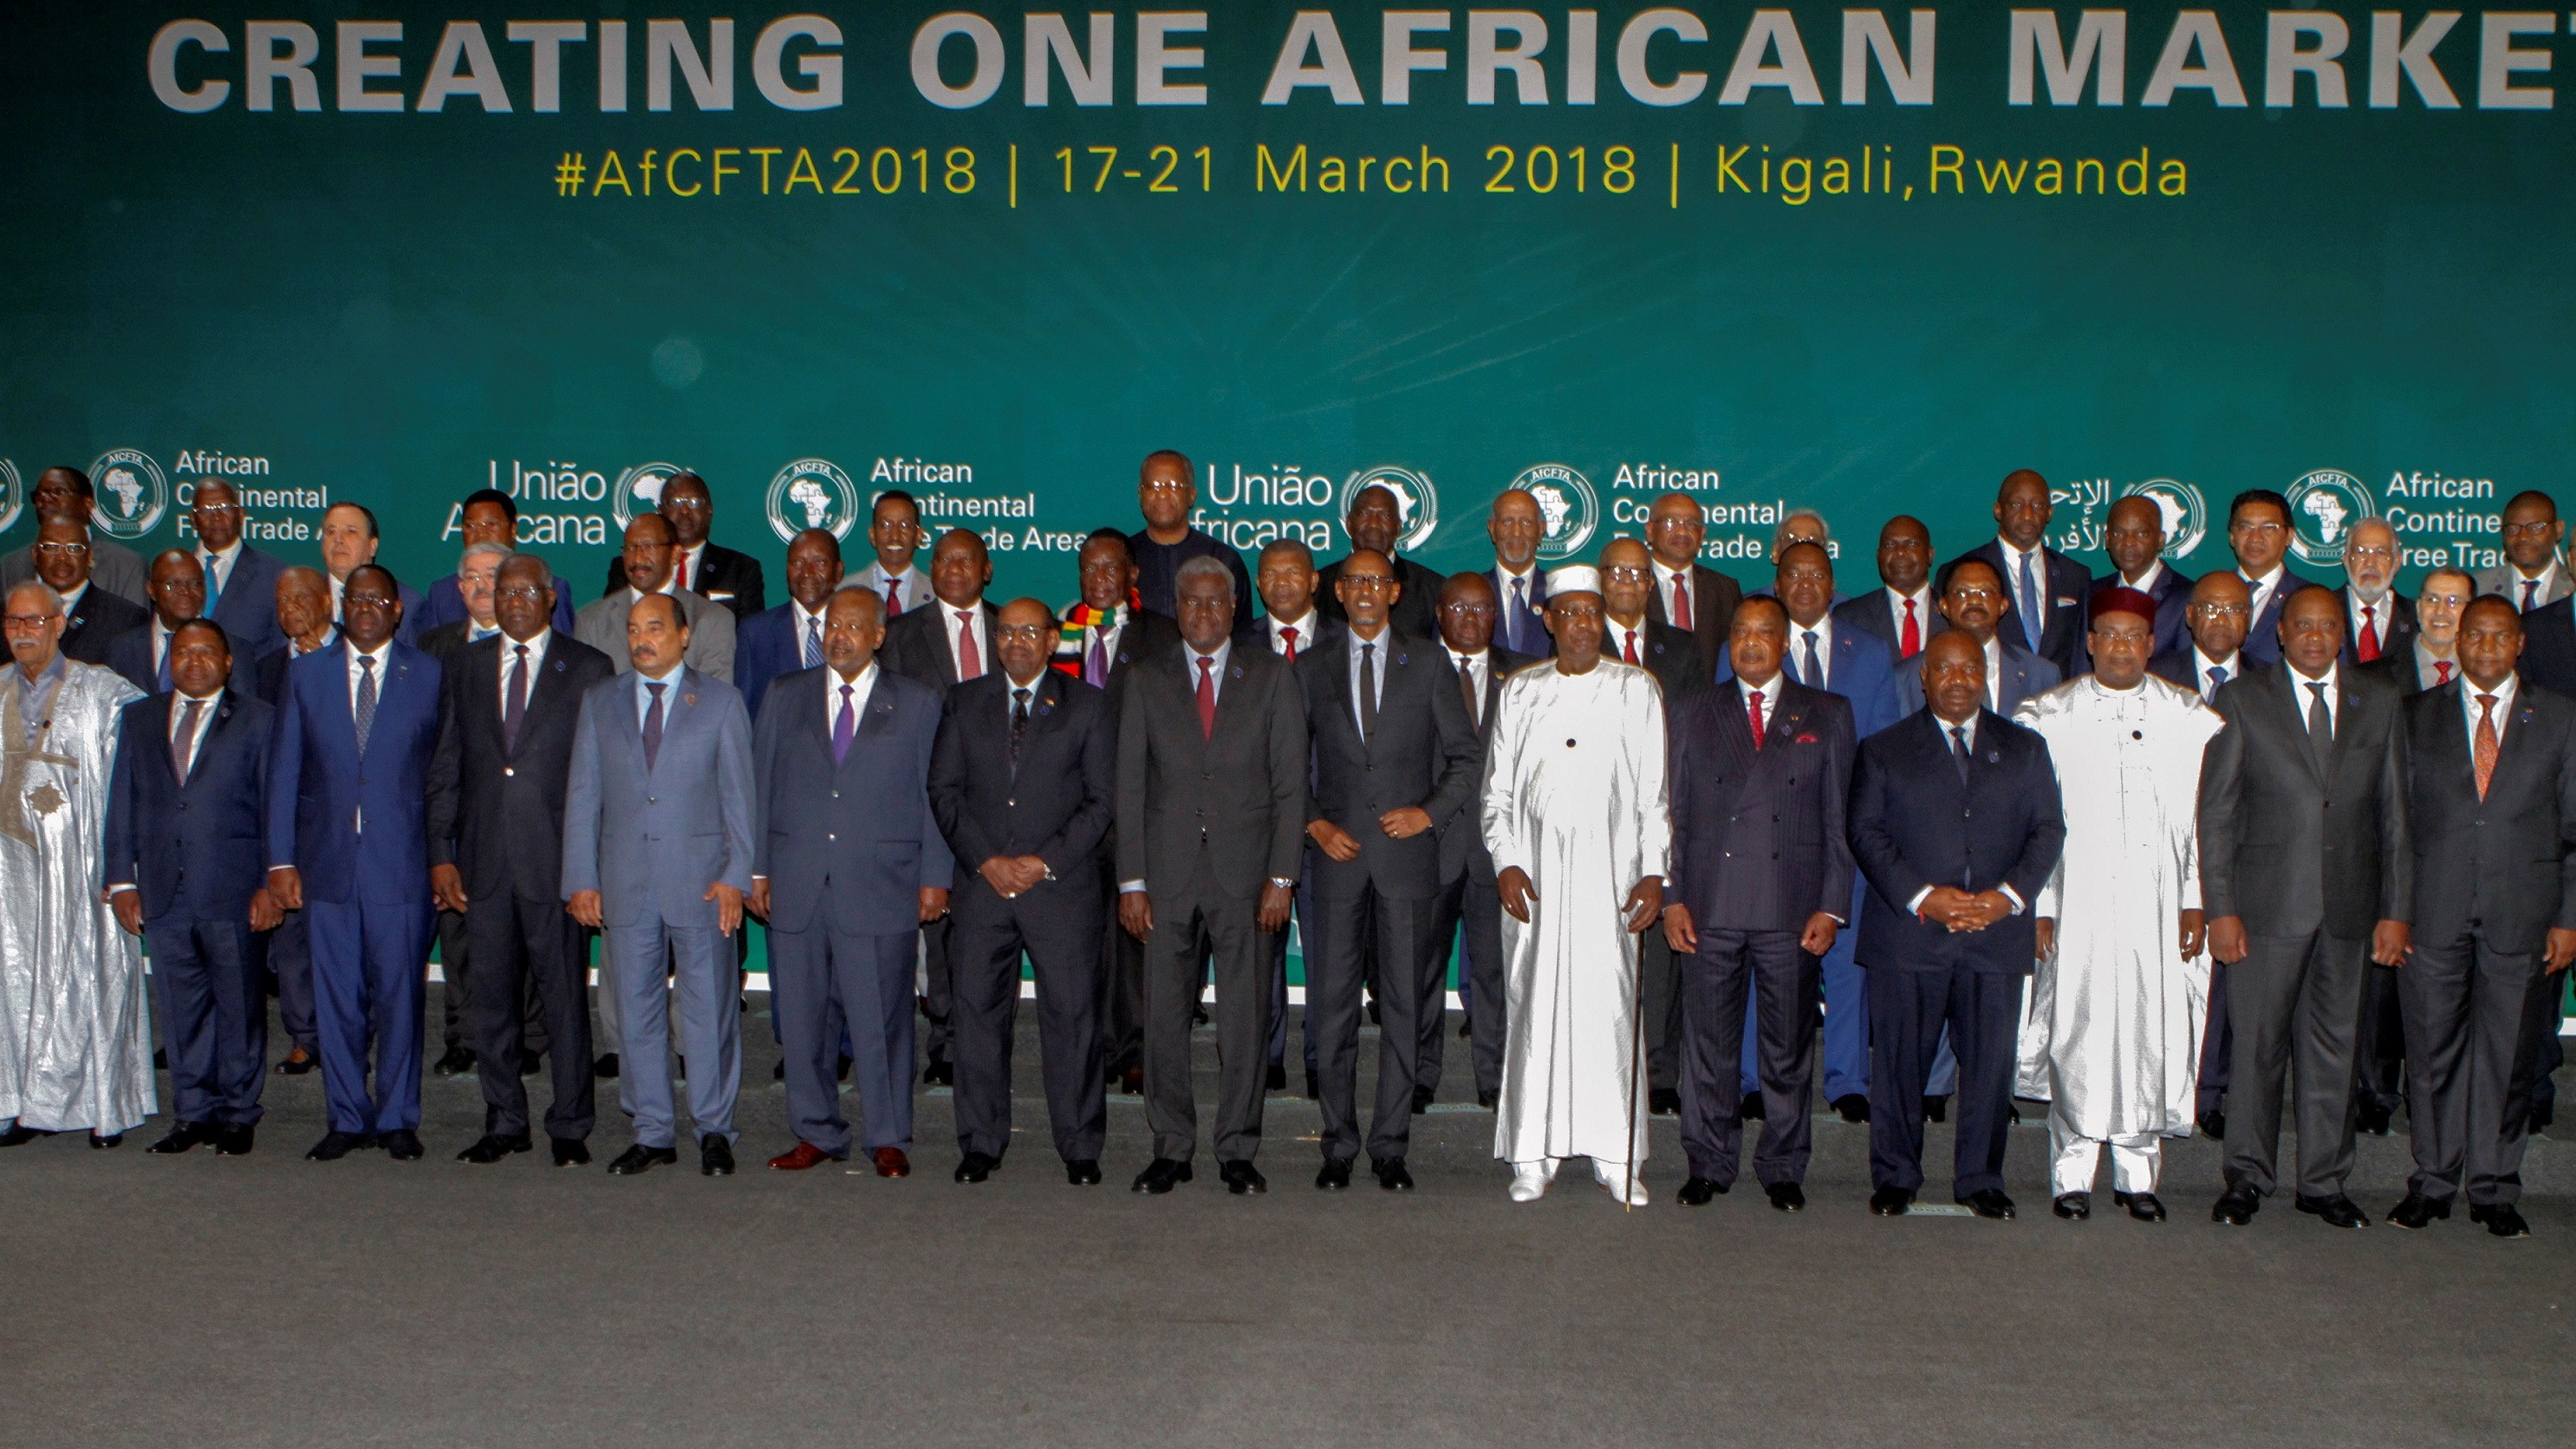 Photo: African leaders at Continental Free Trade Agreement signing